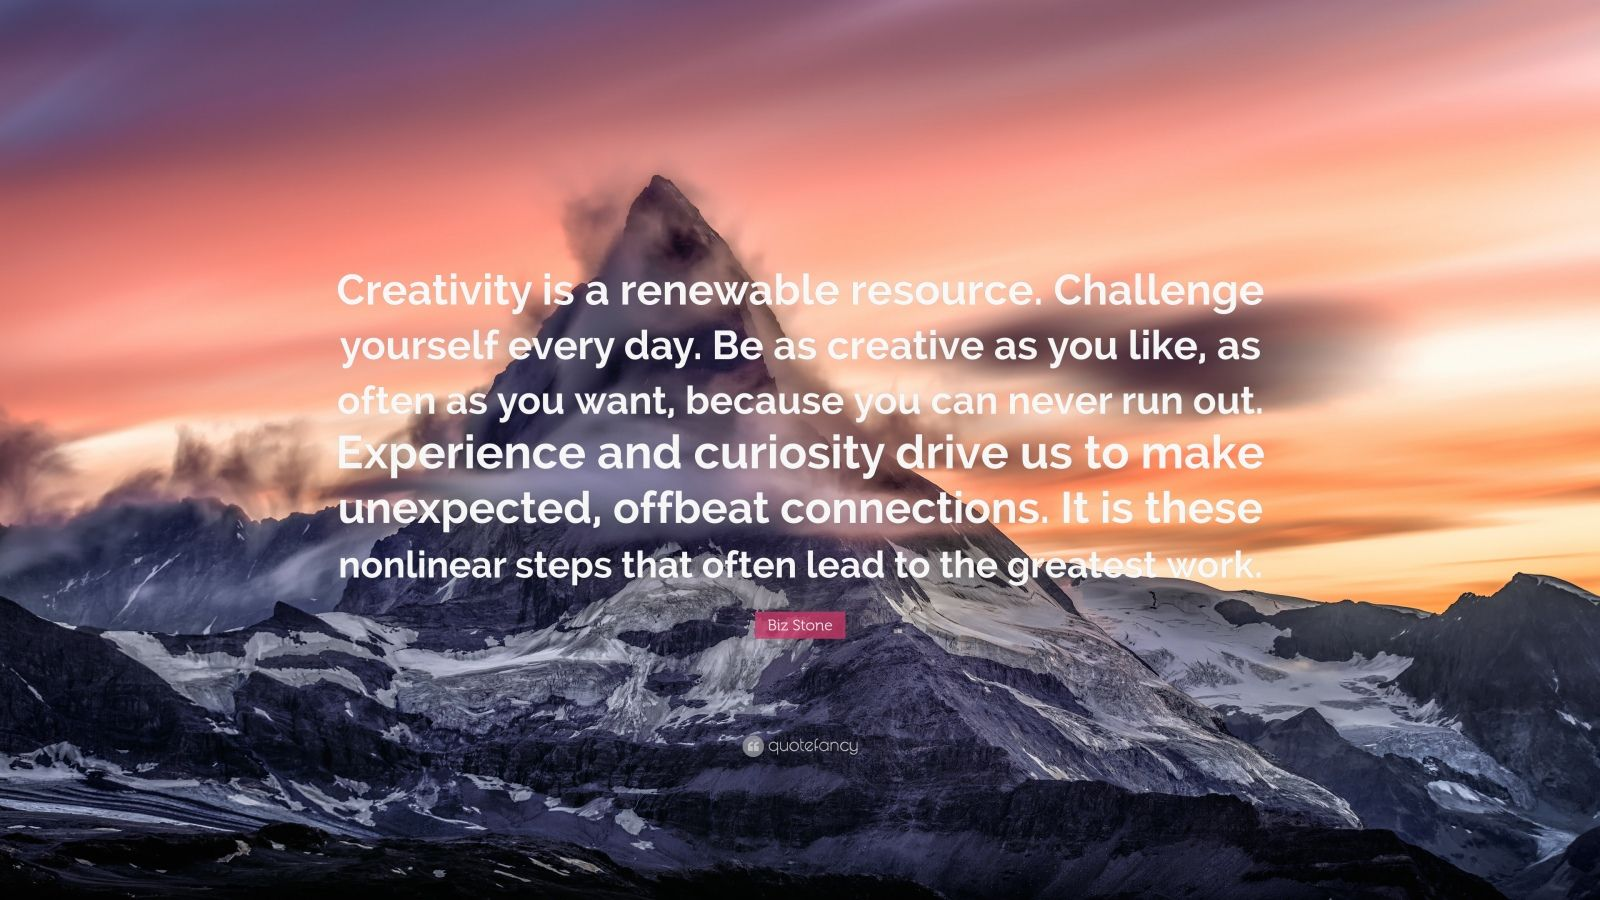 """Biz Stone Quote: """"Creativity is a renewable resource. Challenge yourself every day. Be as creative as you like, as often as you want, because you can never run out. Experience and curiosity drive us to make unexpected, offbeat connections. It is these nonlinear steps that often lead to the greatest work."""""""